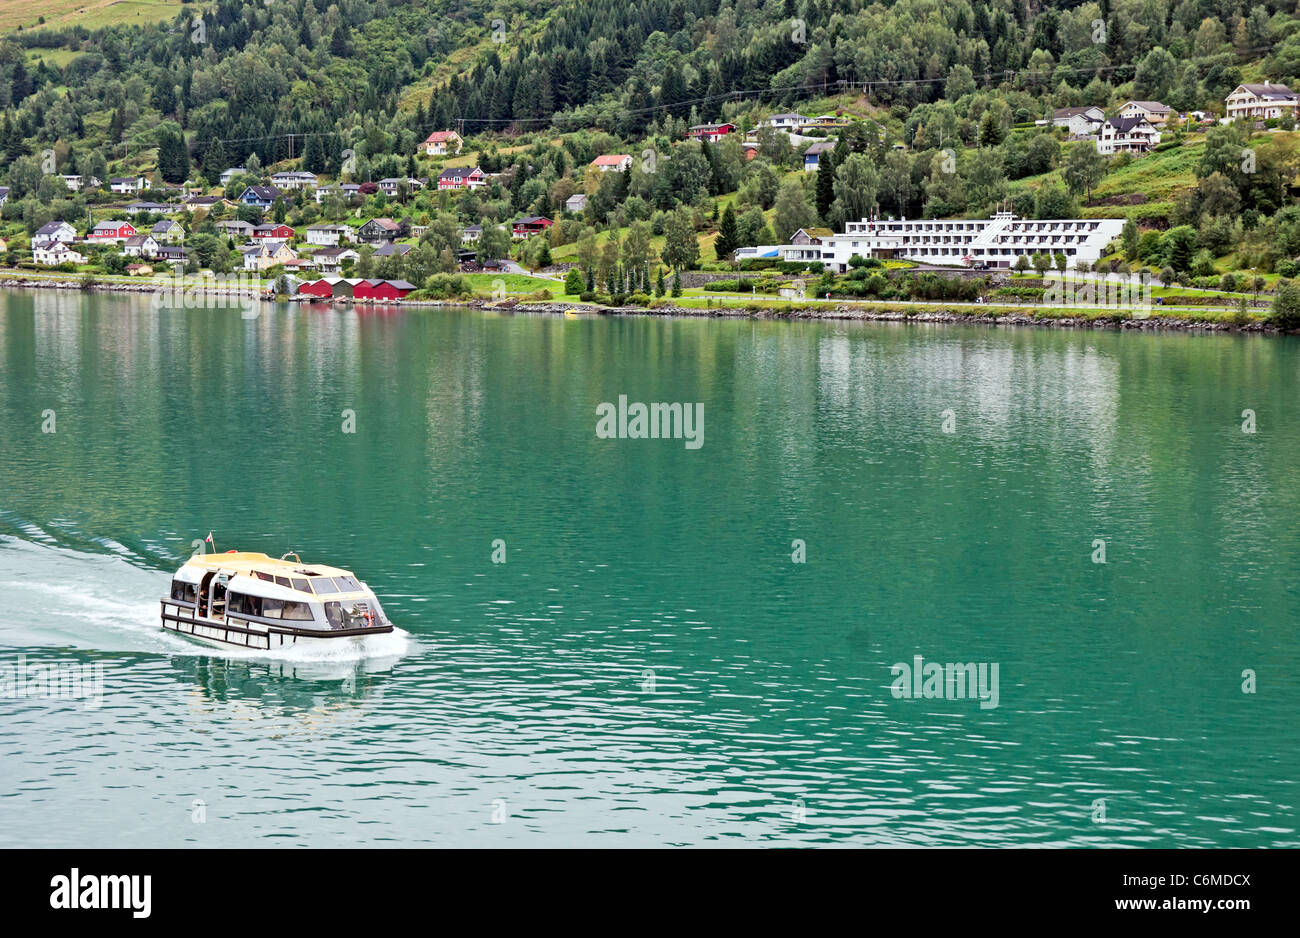 A tender is carrying passengers from a cruise liner to Olden pier on the Innvikfjorden in Norway with Olden Fjordhotel - Stock Image